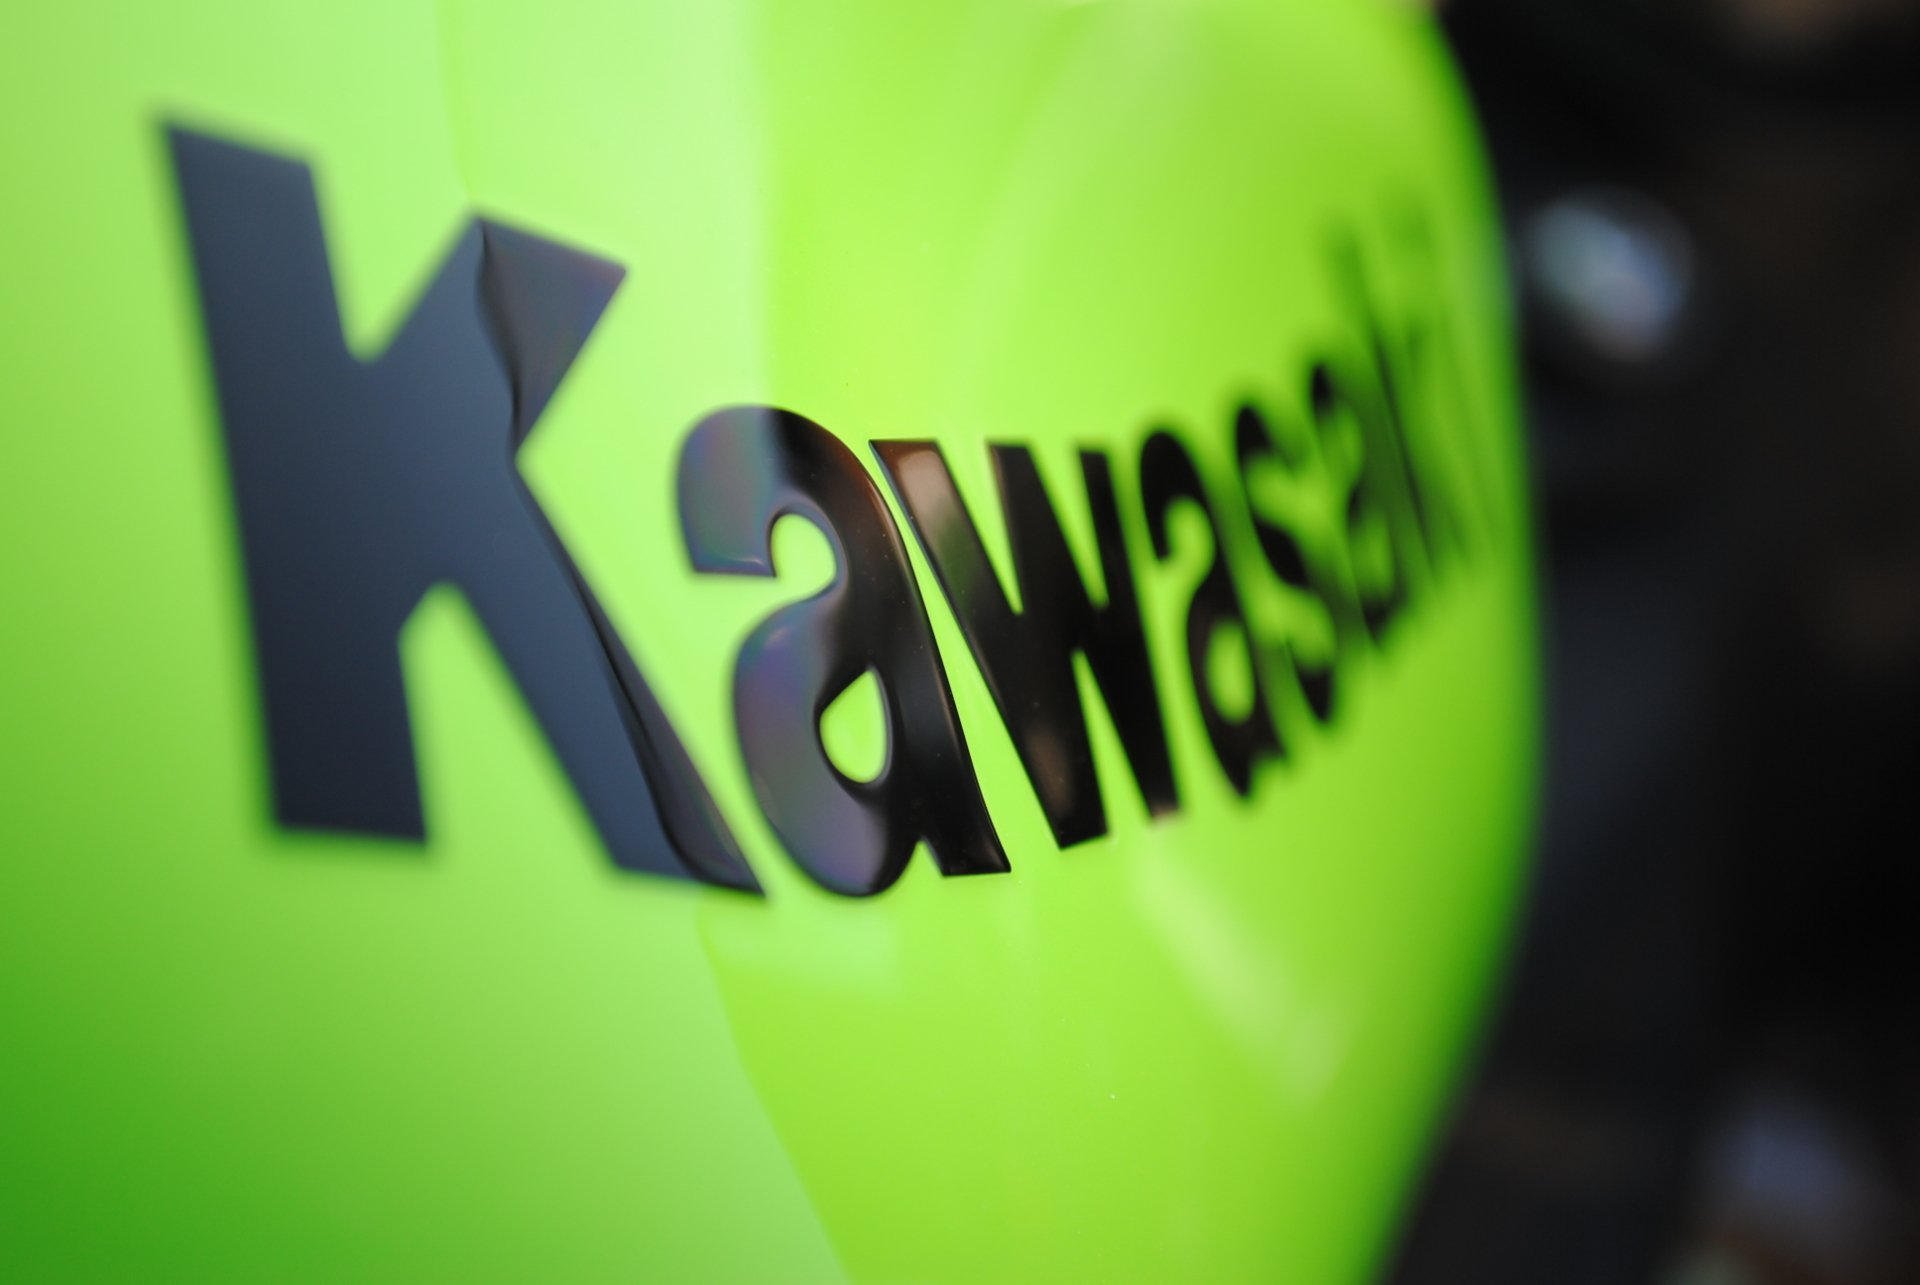 Vehicles - Kawasaki  Wallpaper